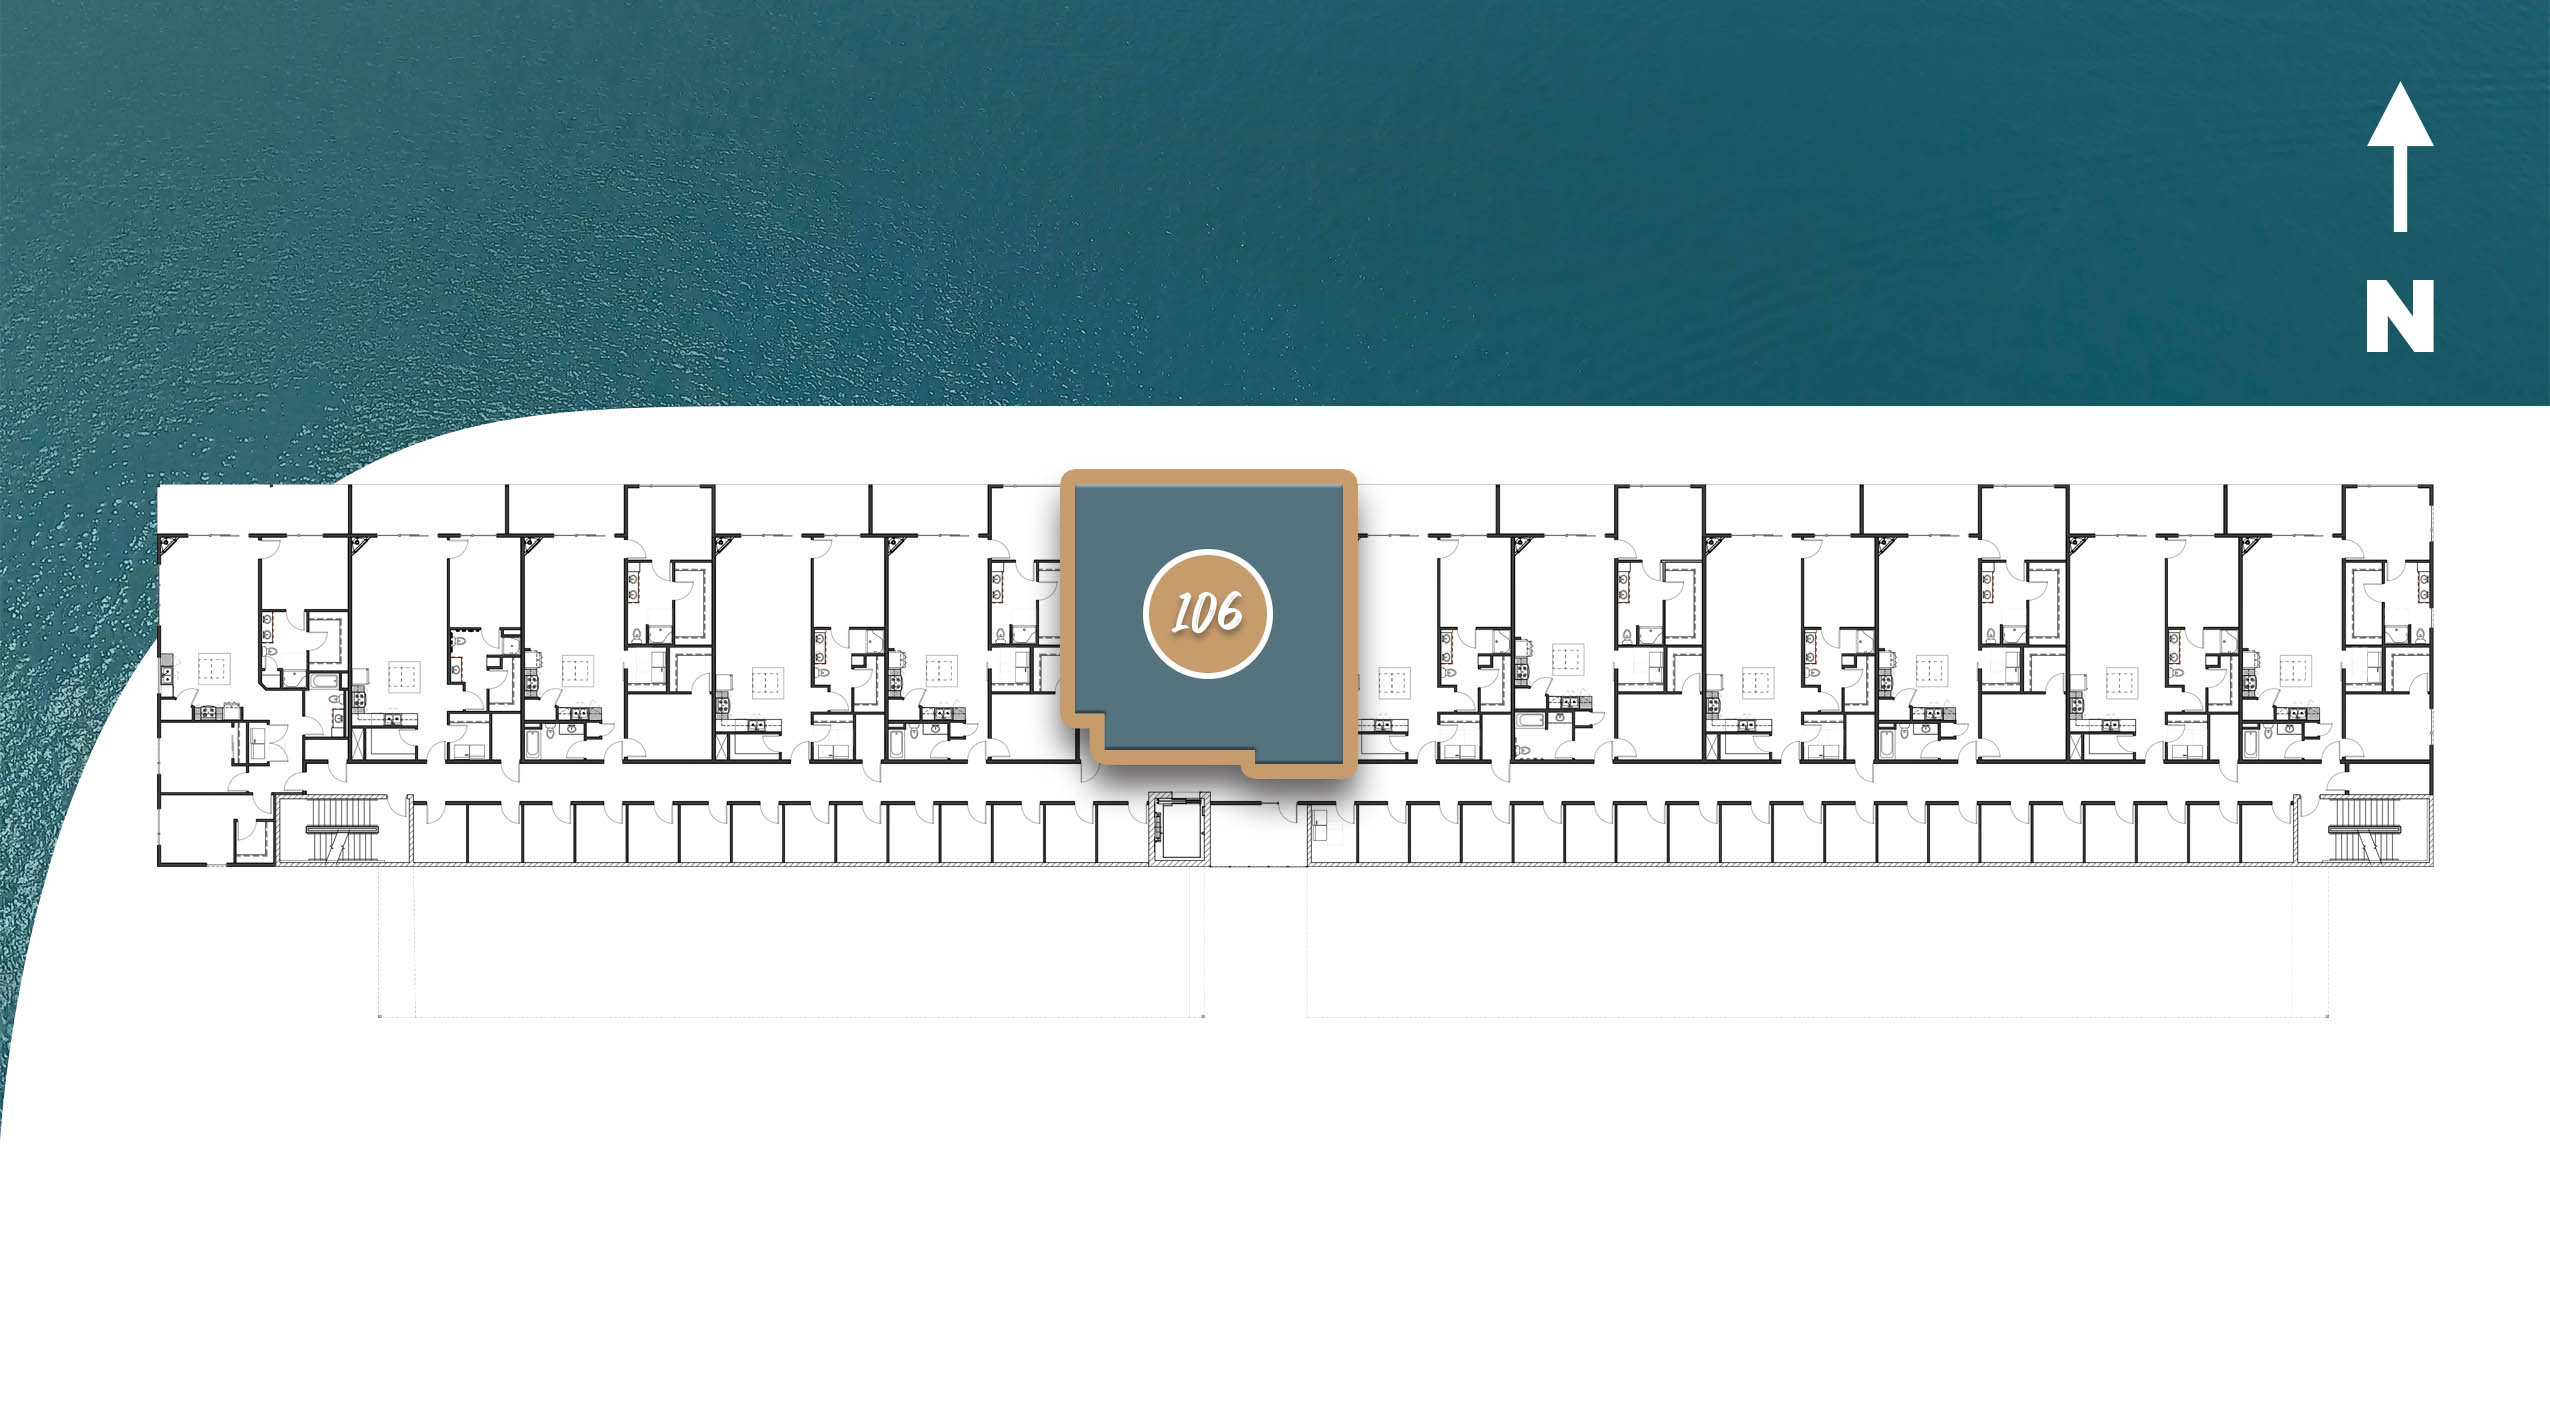 Axis Floor Plan Layout, Ebb Building at The Current of the Fox - Kimberly